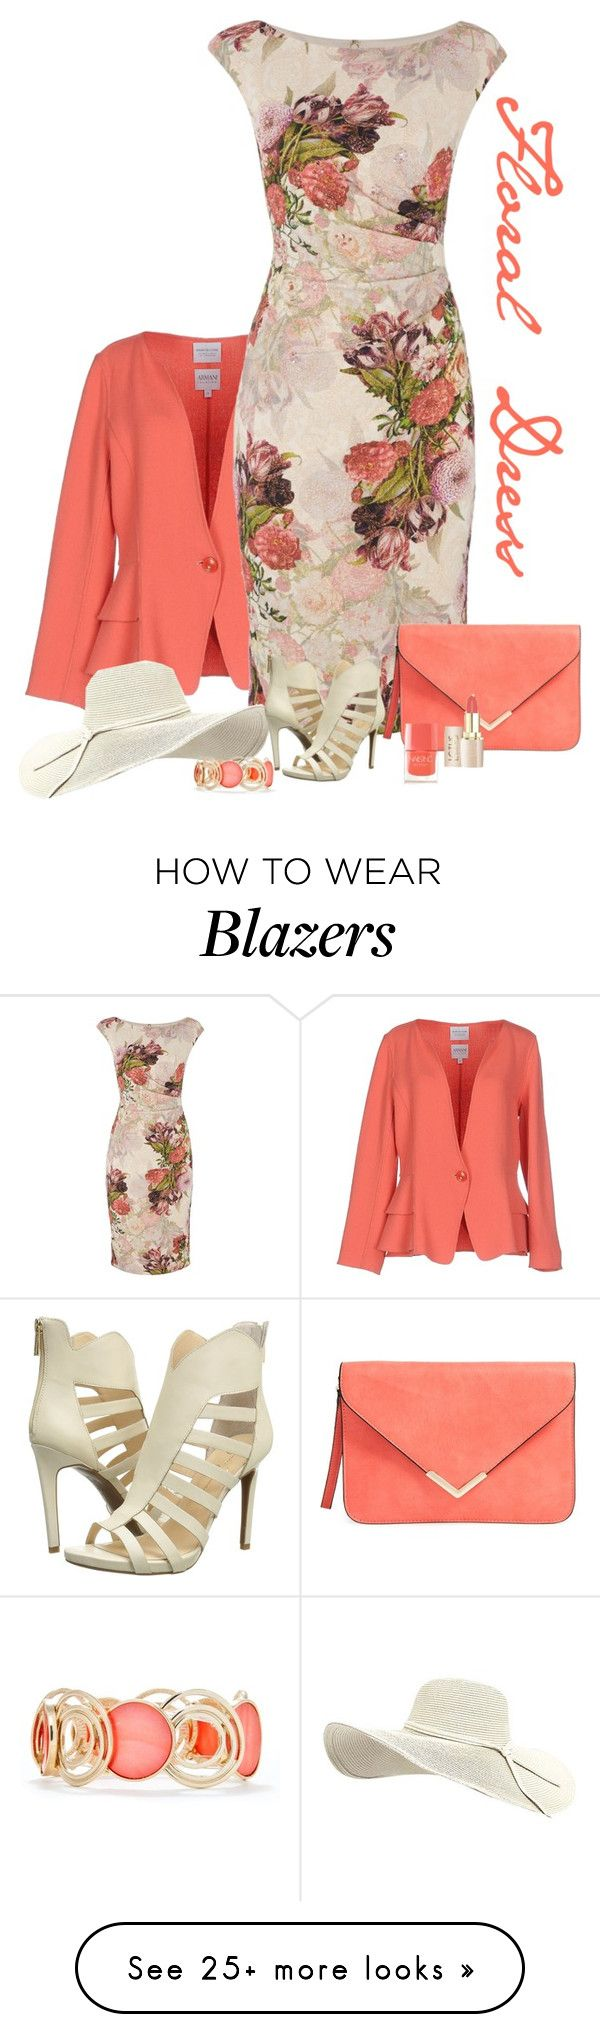 """Floral Dress For Spring"" by lorrainekeenan on Polyvore featuring Armani Collezioni, Adrianna Papell, Nails Inc., New Directions and Jessica Simpson"